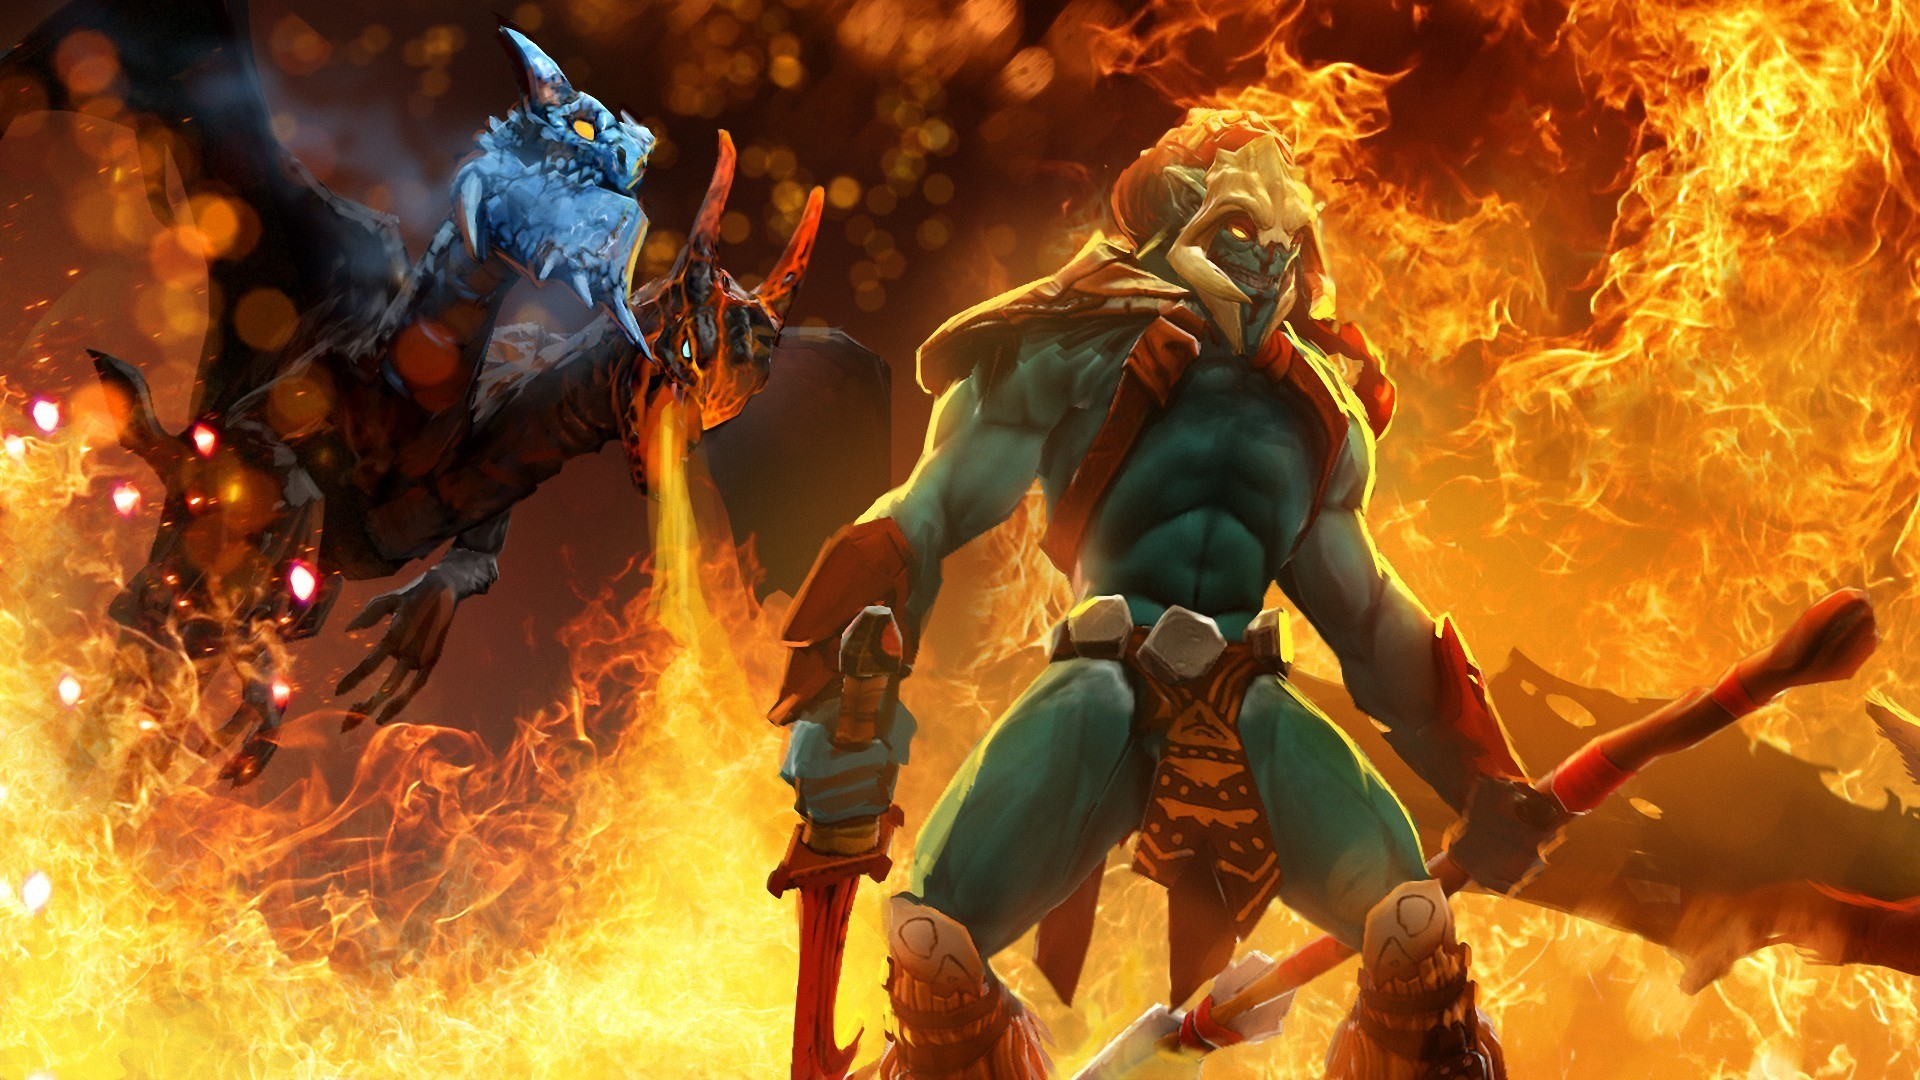 1920x1080 Huskar Dota 2 Wallpaper HD | DotA 2 Wallpapers | Pinterest | Wallpaper, Hd  wallpaper and Concept art